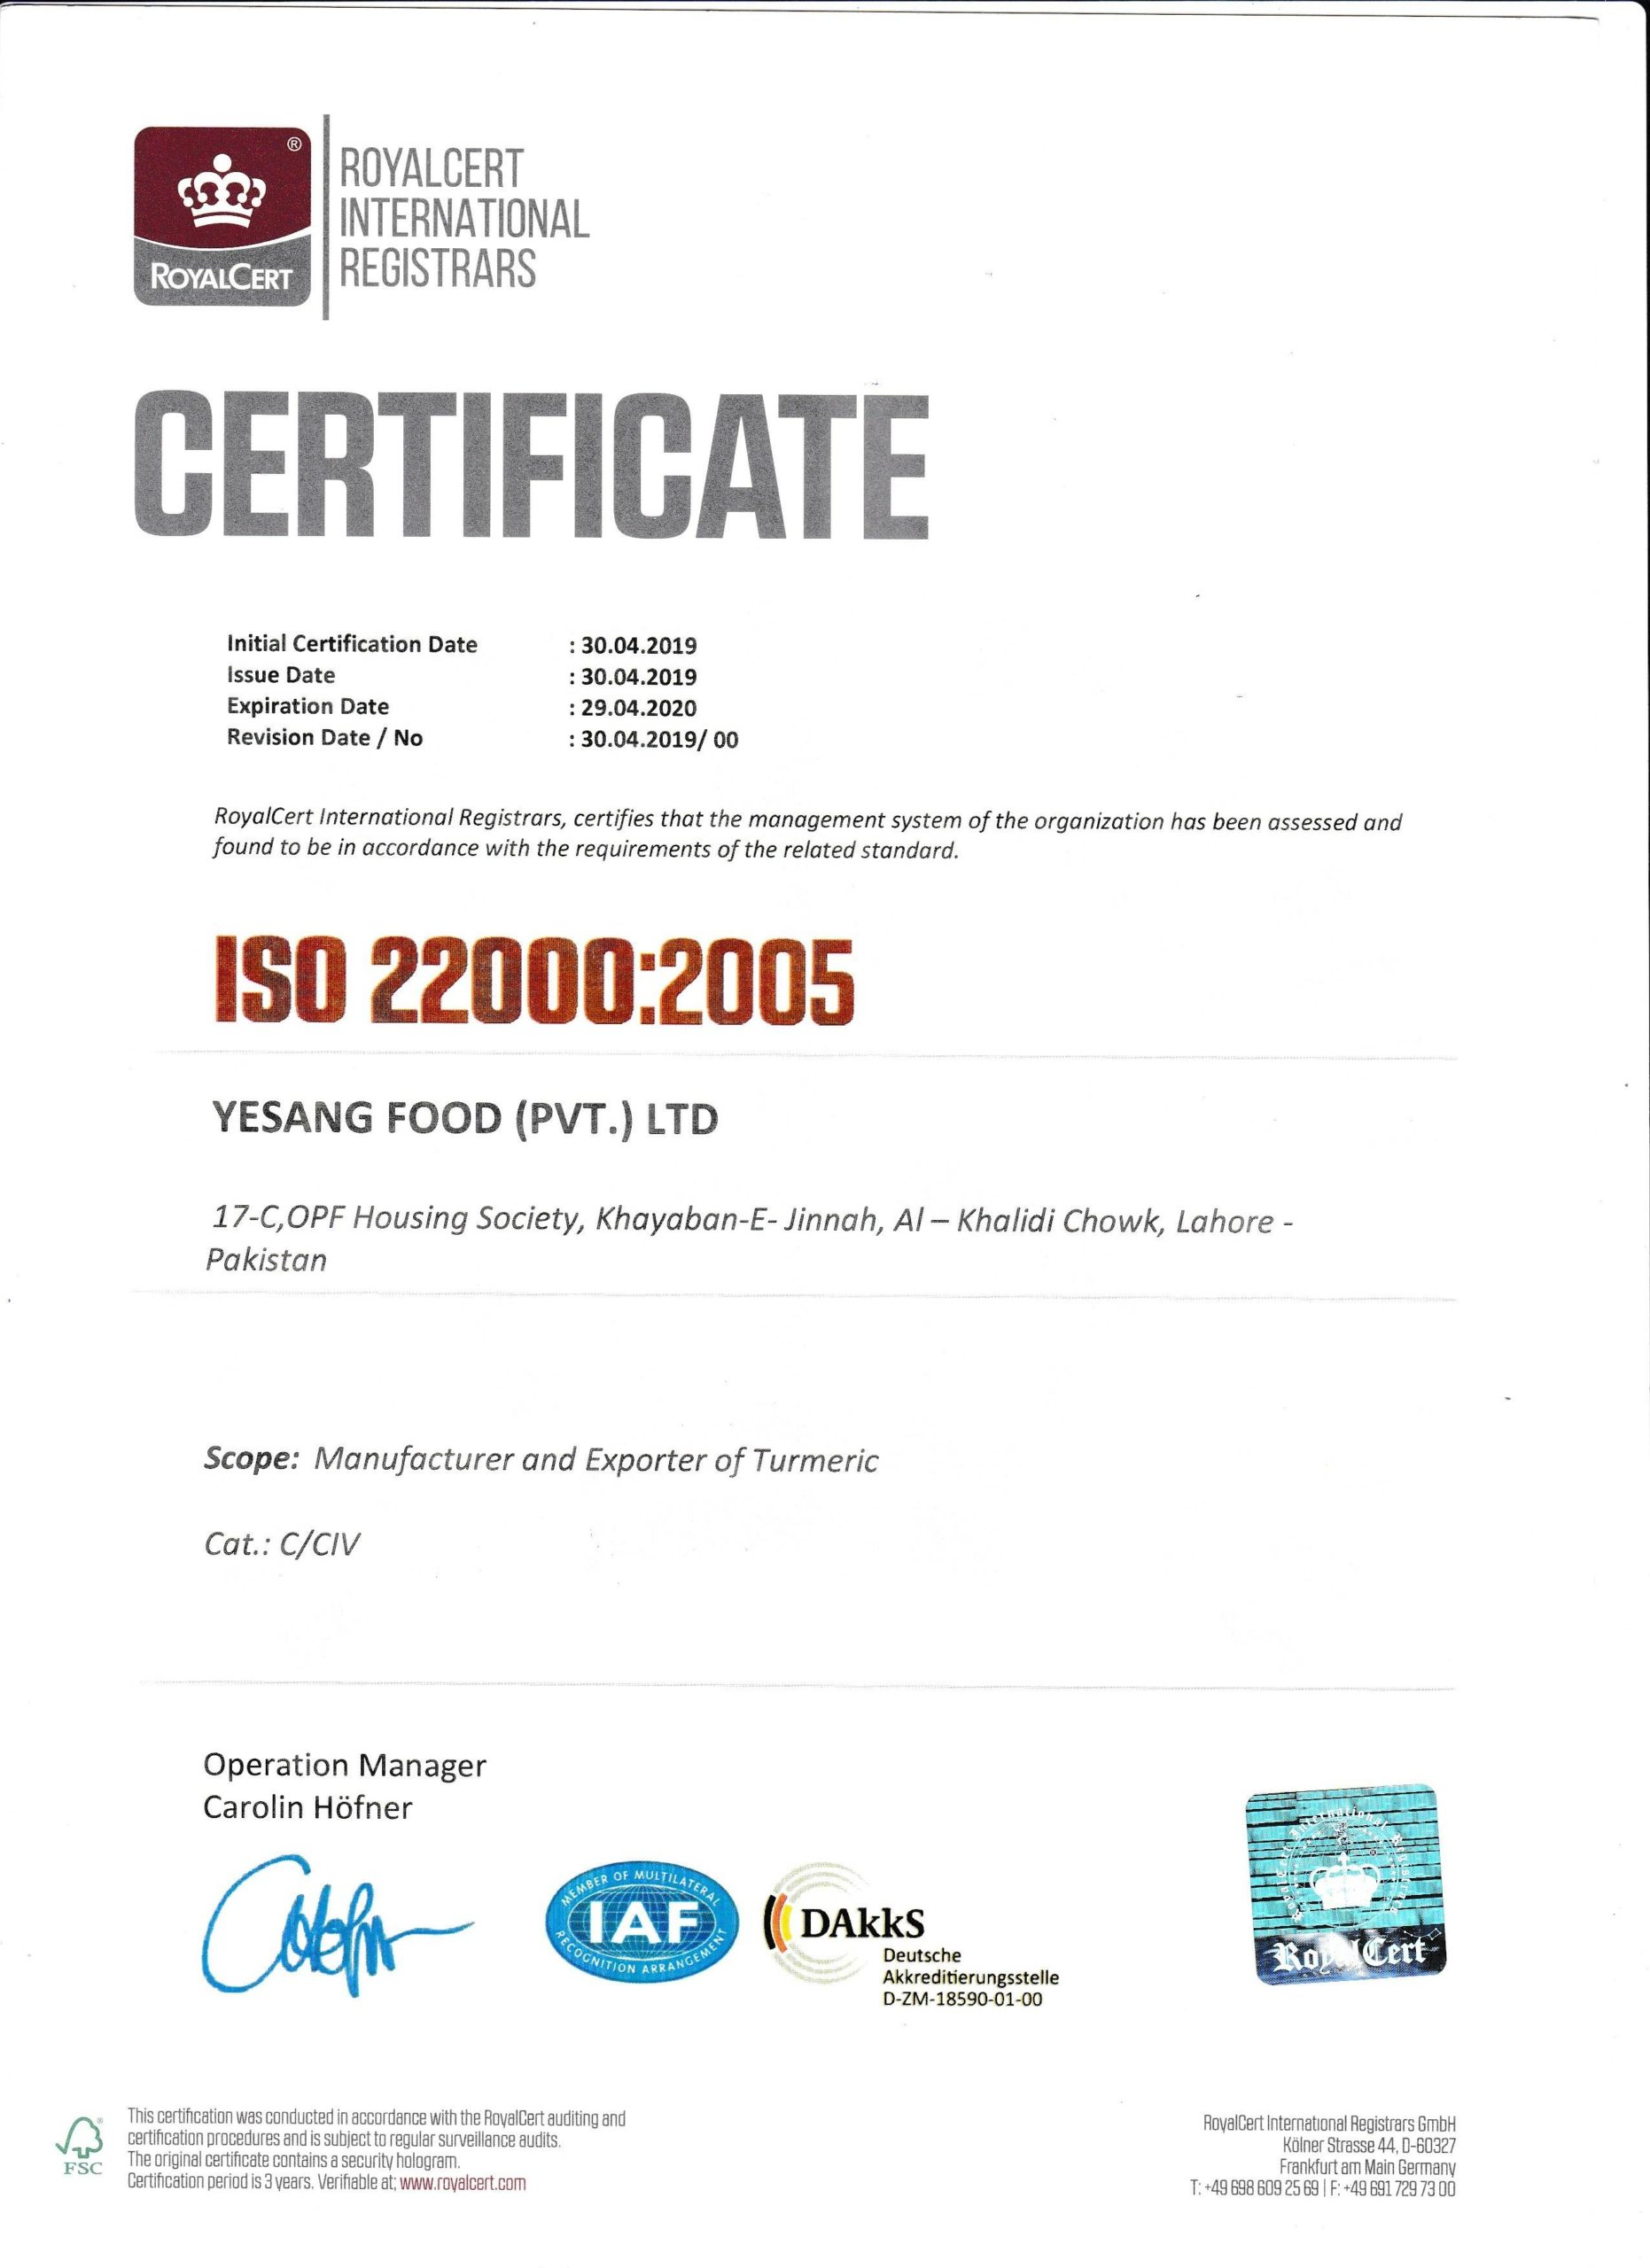 ISO 22000:2005 Certification - Yesang Food Korea